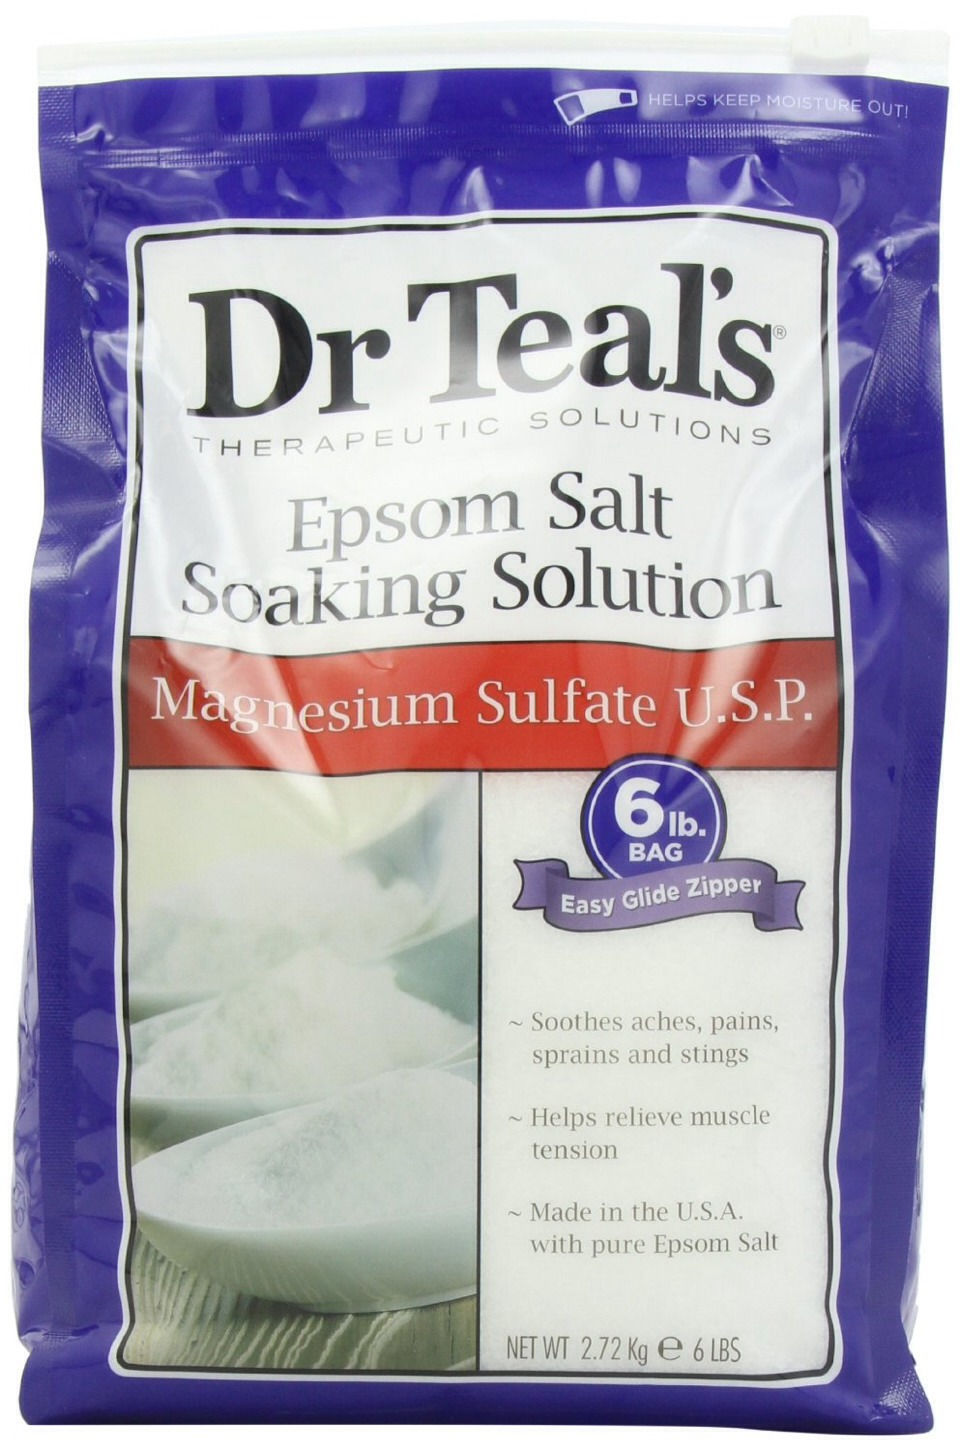 3. Hair volumizer — Combine equal parts conditioner and Epsom salt. Work the mixture through your hair and leave for 20 minutes. The result? Hair full of va-va-voom and volume! 4. Facial scrub — This is one of my favorite Epsom salt uses. Mix 1/2 tsp of Epsom salt with your favorite cleanser